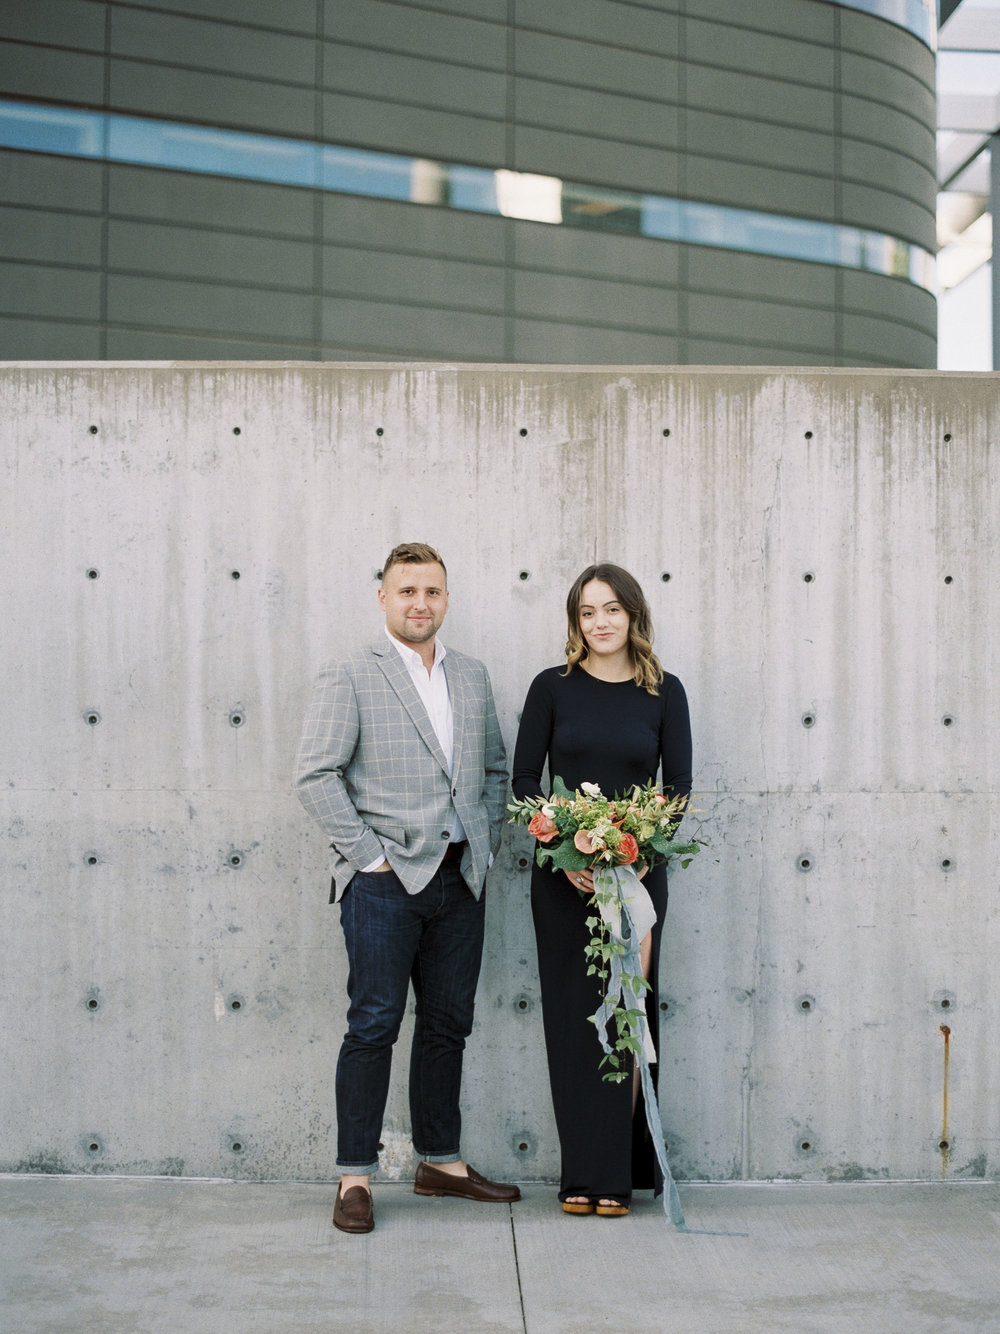 Dallas Wedding Photographer, Amanda Lenhardt Photography, downtown Dallas engagement session